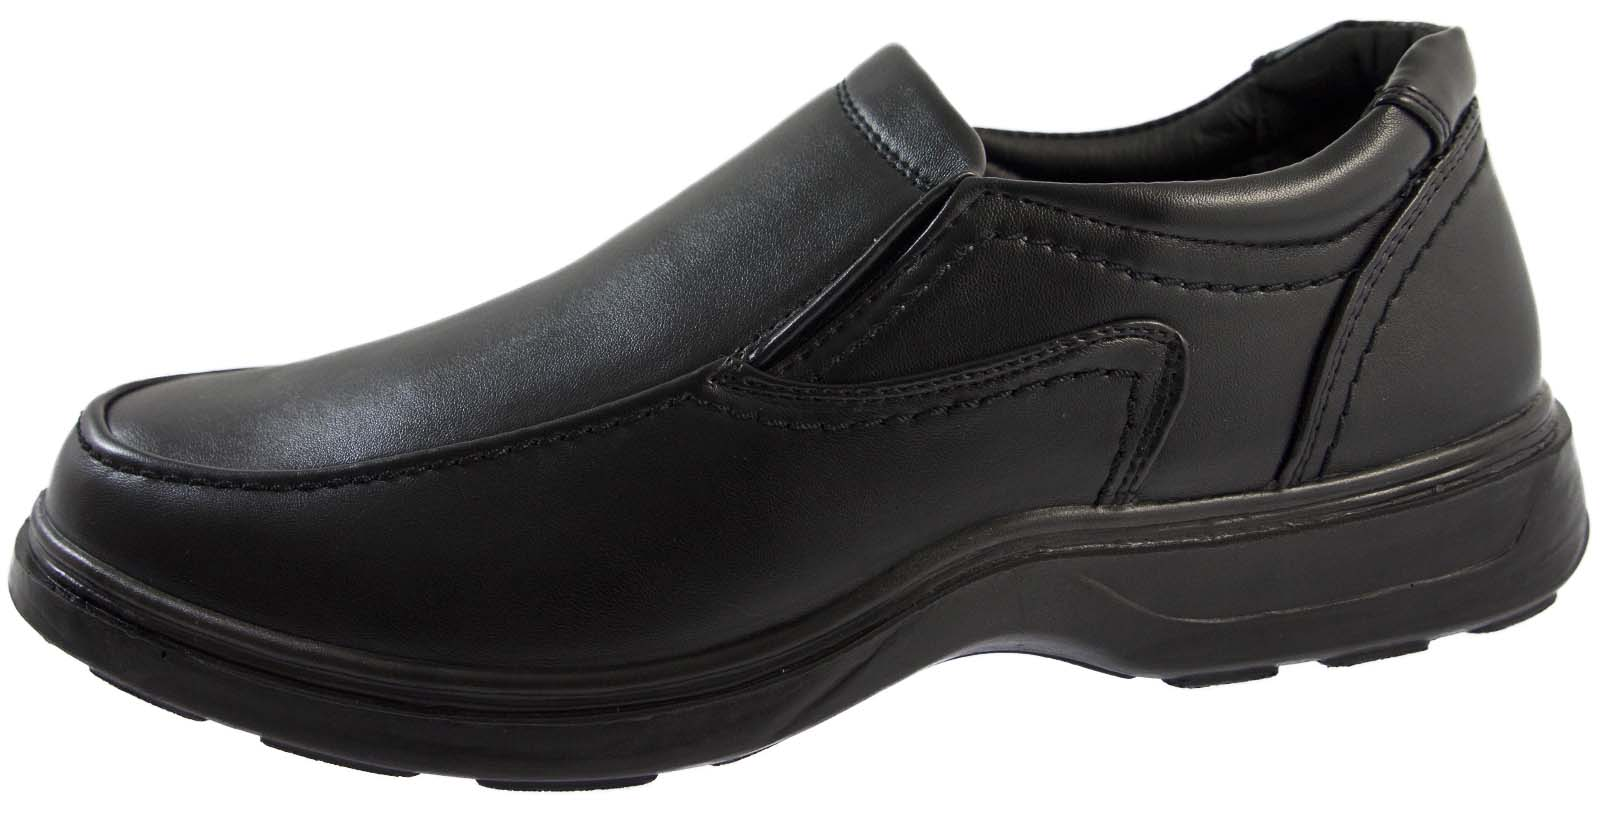 Mens Wide Fitting Comfort Shoes Formal Flexible Sole Work ...